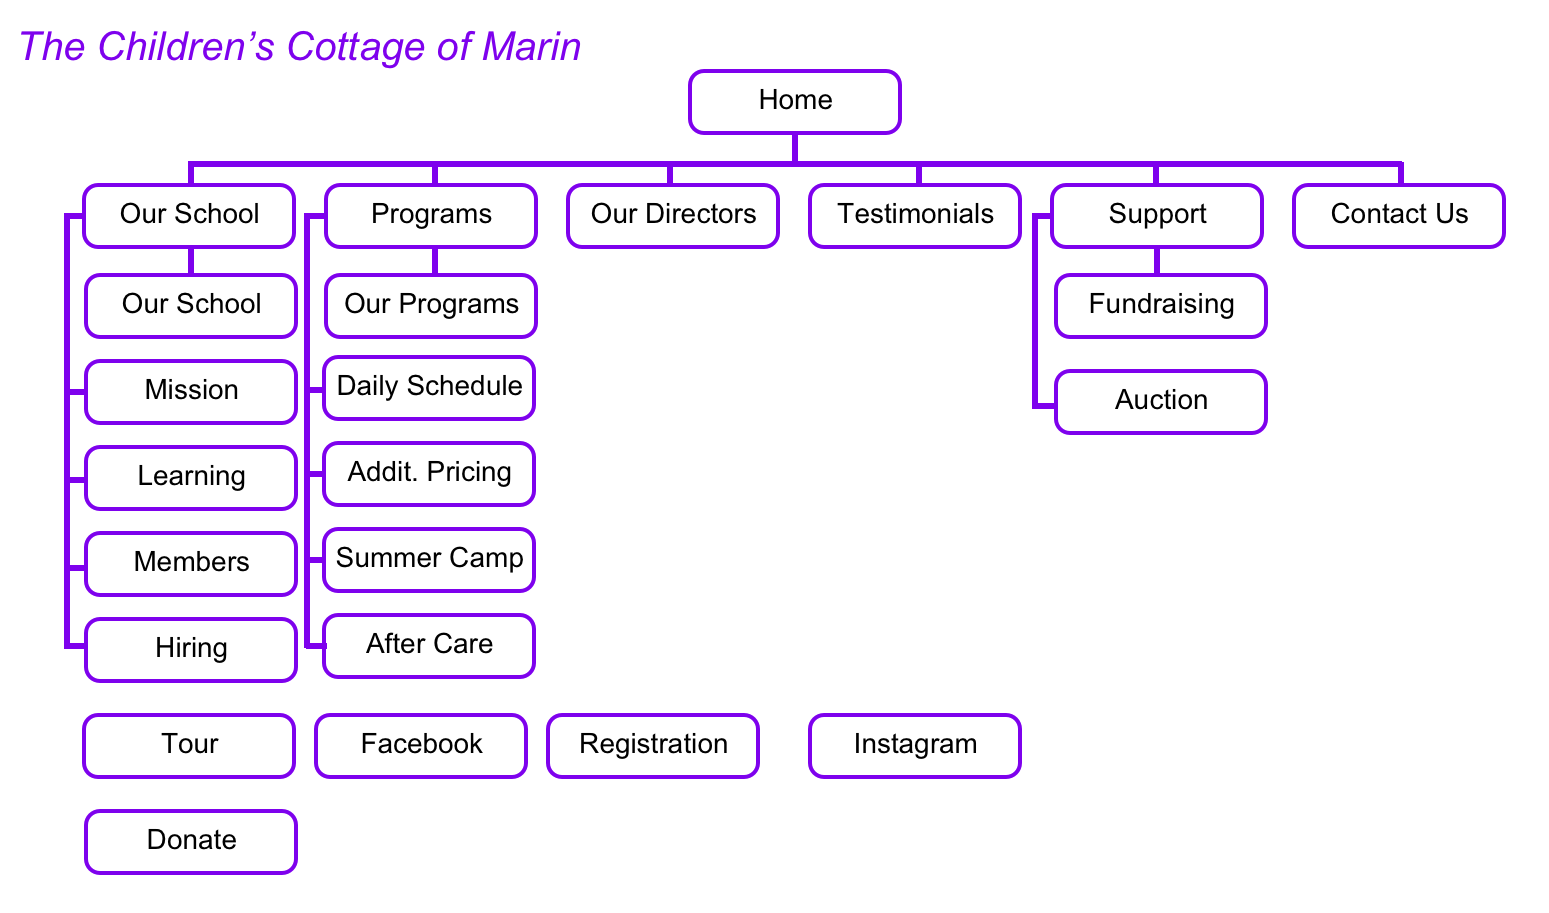 A chart showing what the current sitemap of the Children's Cottage website looks like.